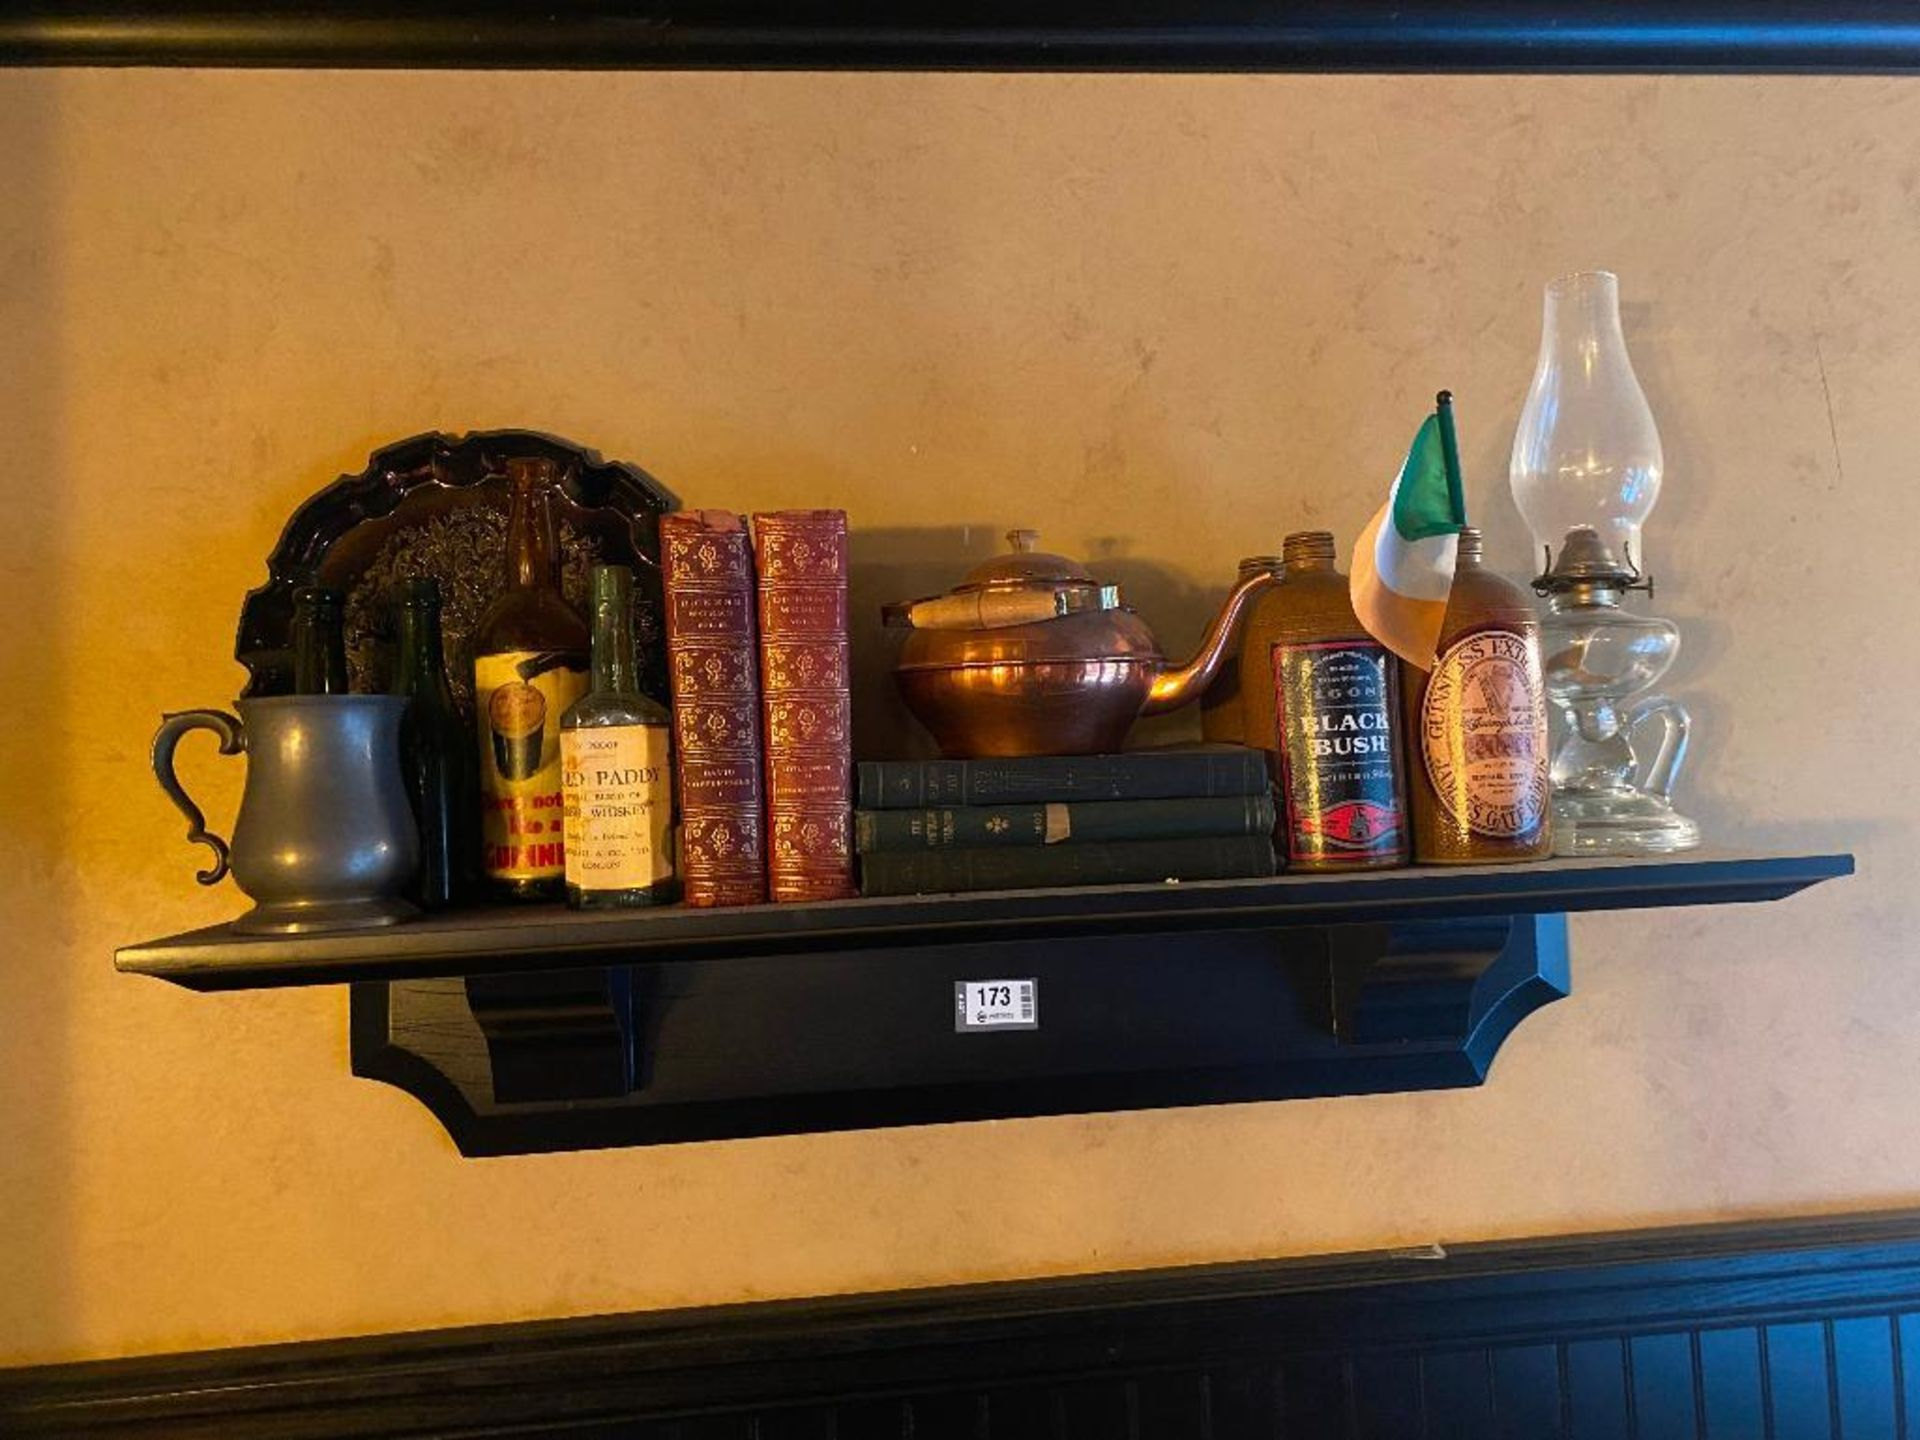 WOODEN WALL SHELF WITH ASSORTED DECORATIVE ITEMS - NOTE: REQUIRES REMOVAL FROM WALL, PLEASE INSPECT